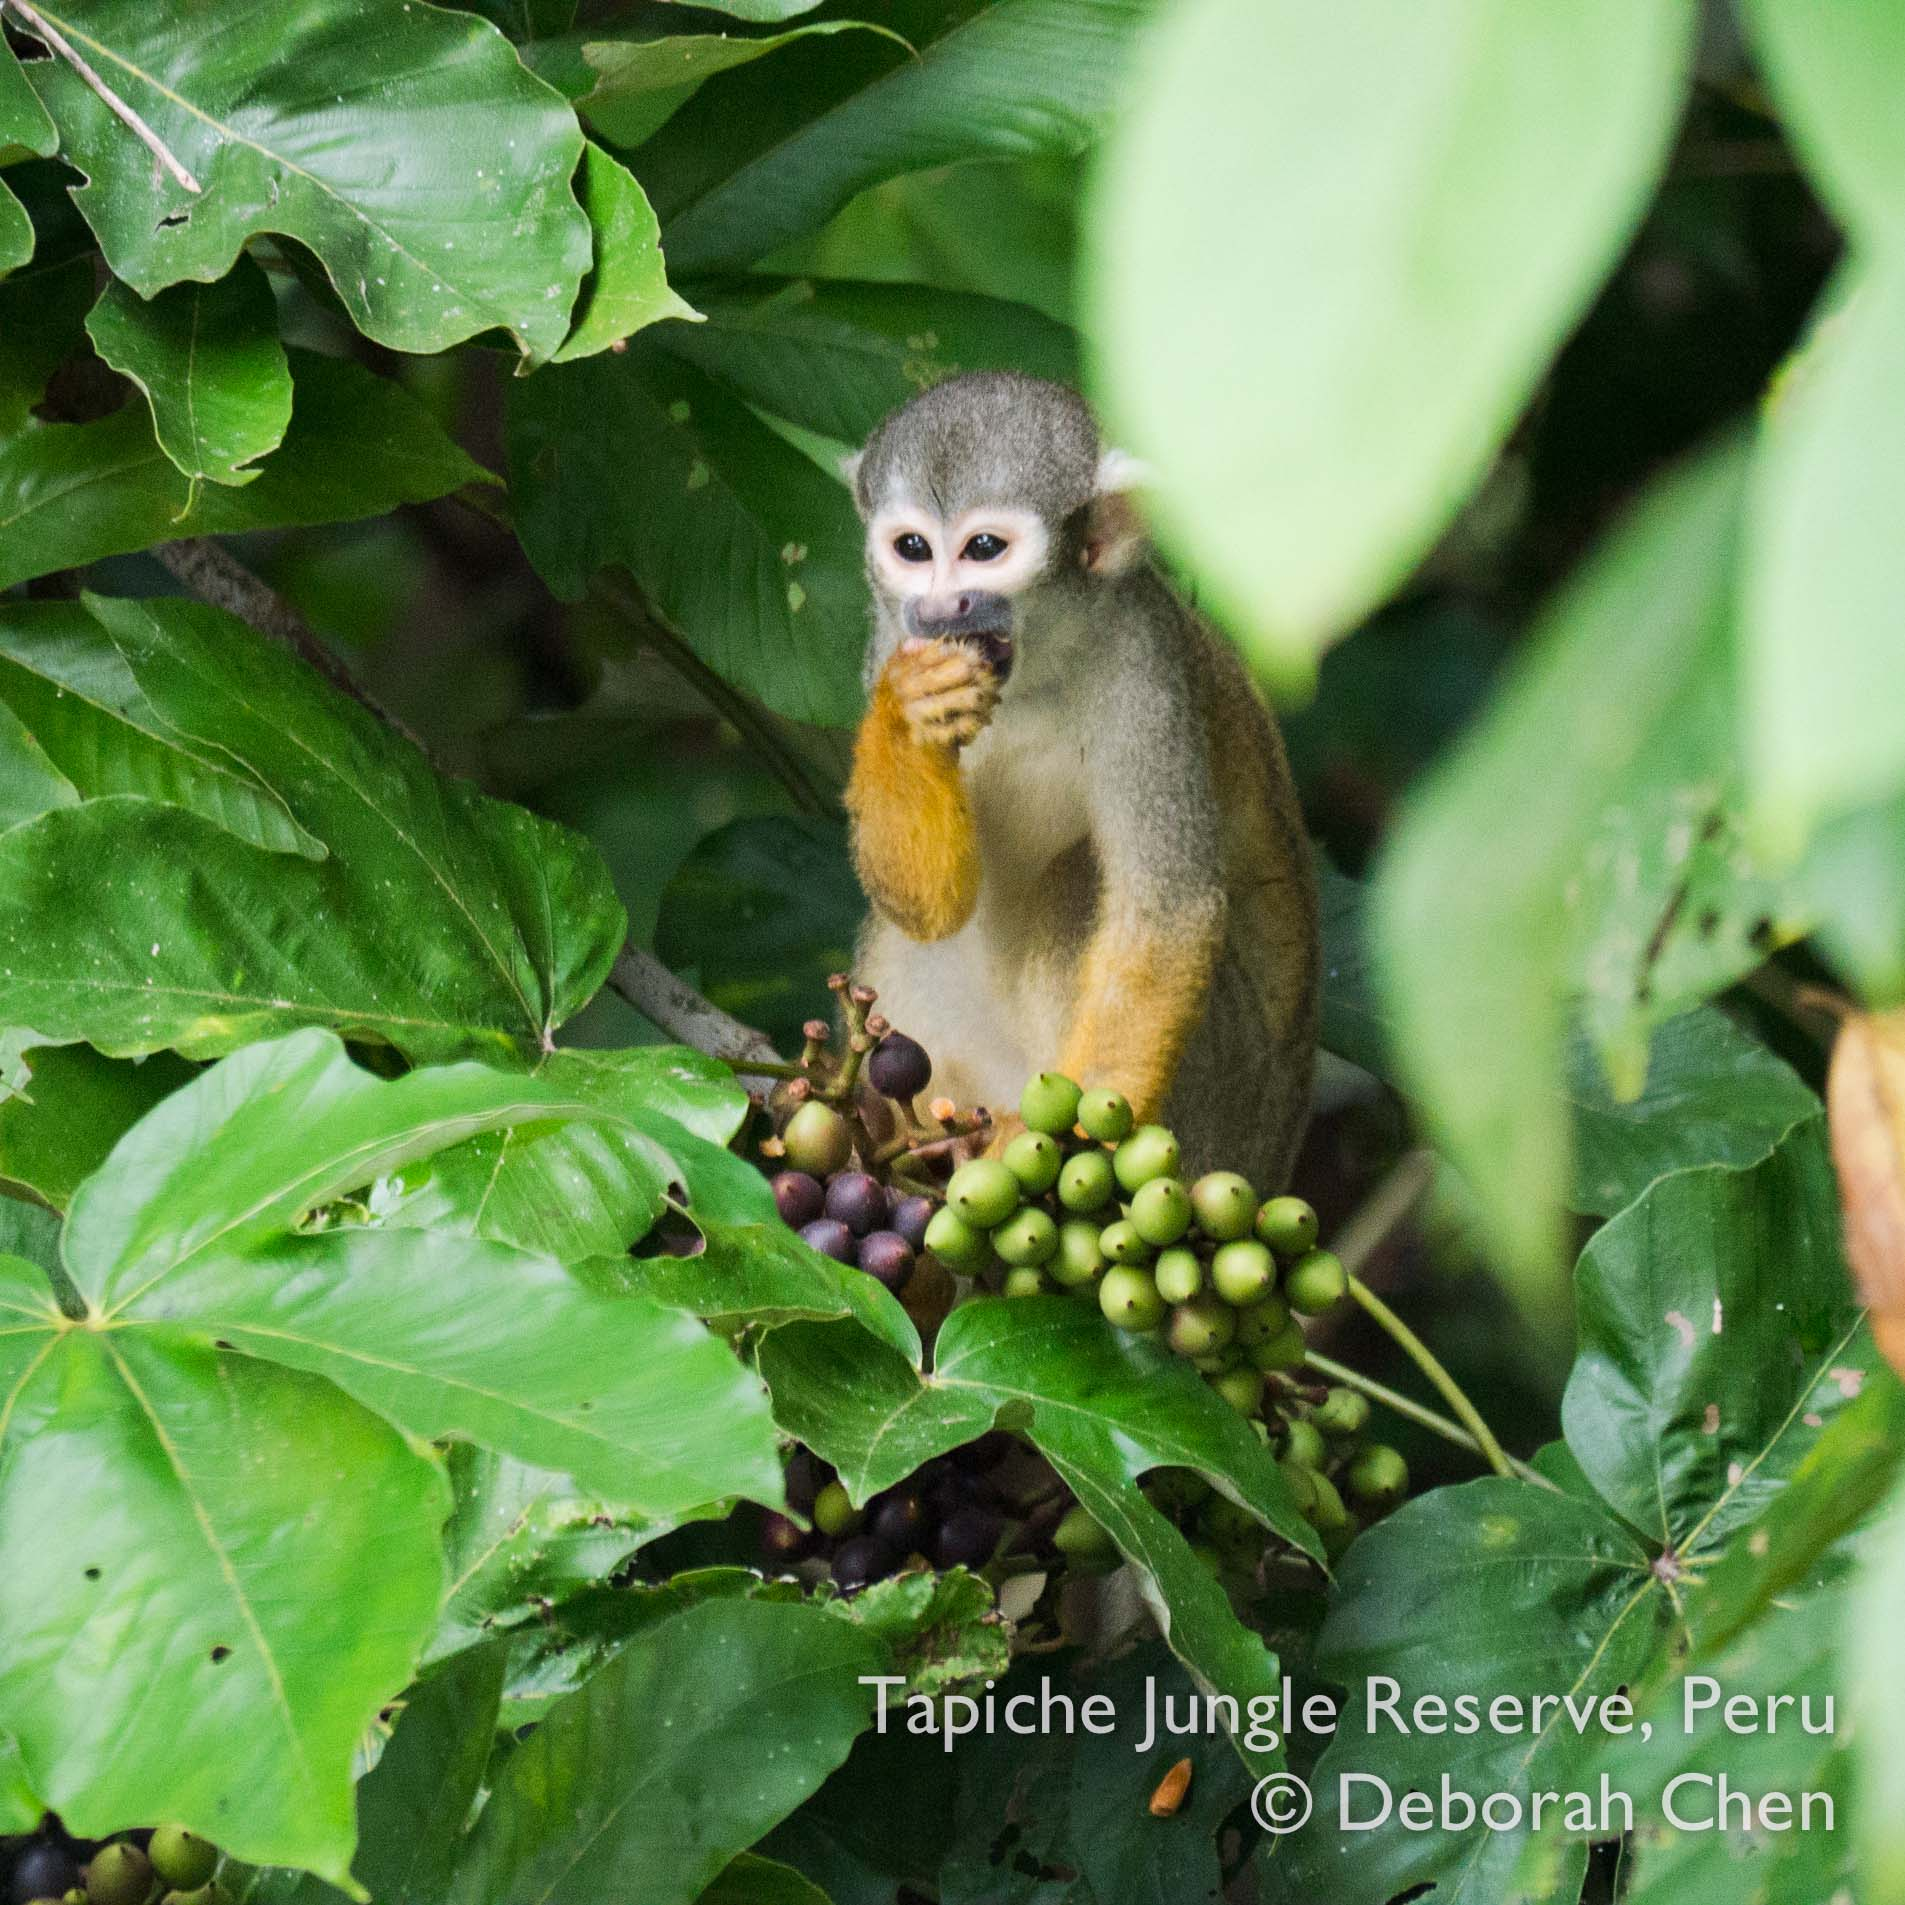 Squirrel monkey feasting on wild jungle fruits at the Tapiche Jungle Reserve, Peru